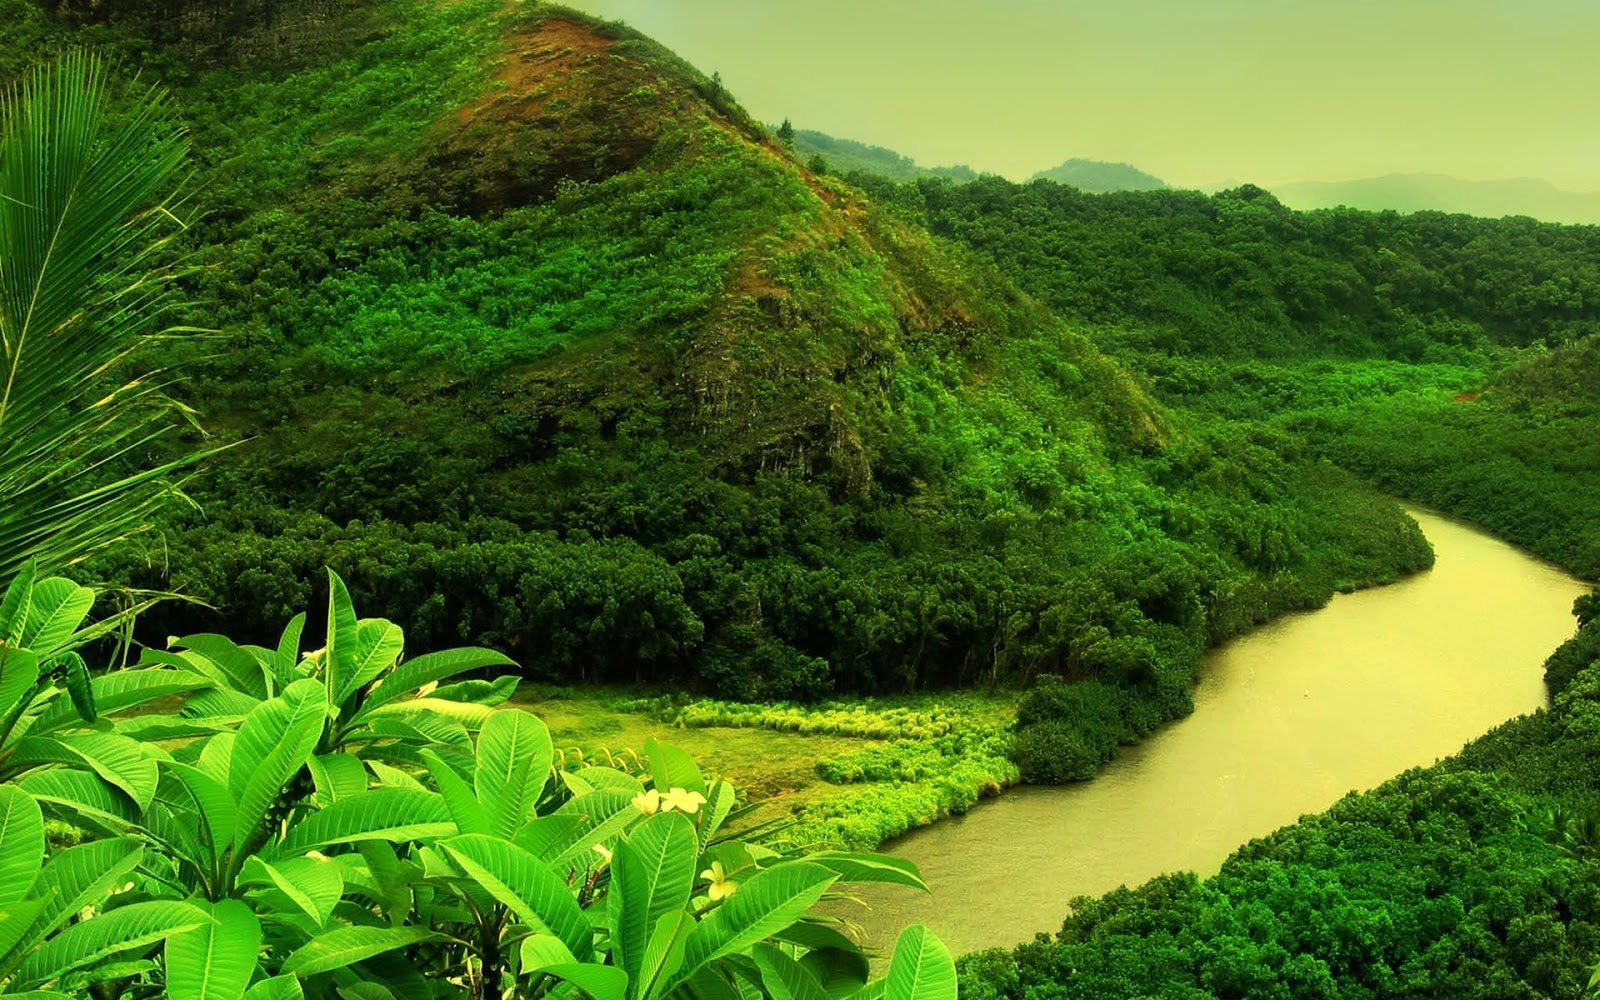 Greenery Wallpaper – Add A Green Background To Your Room Or Space